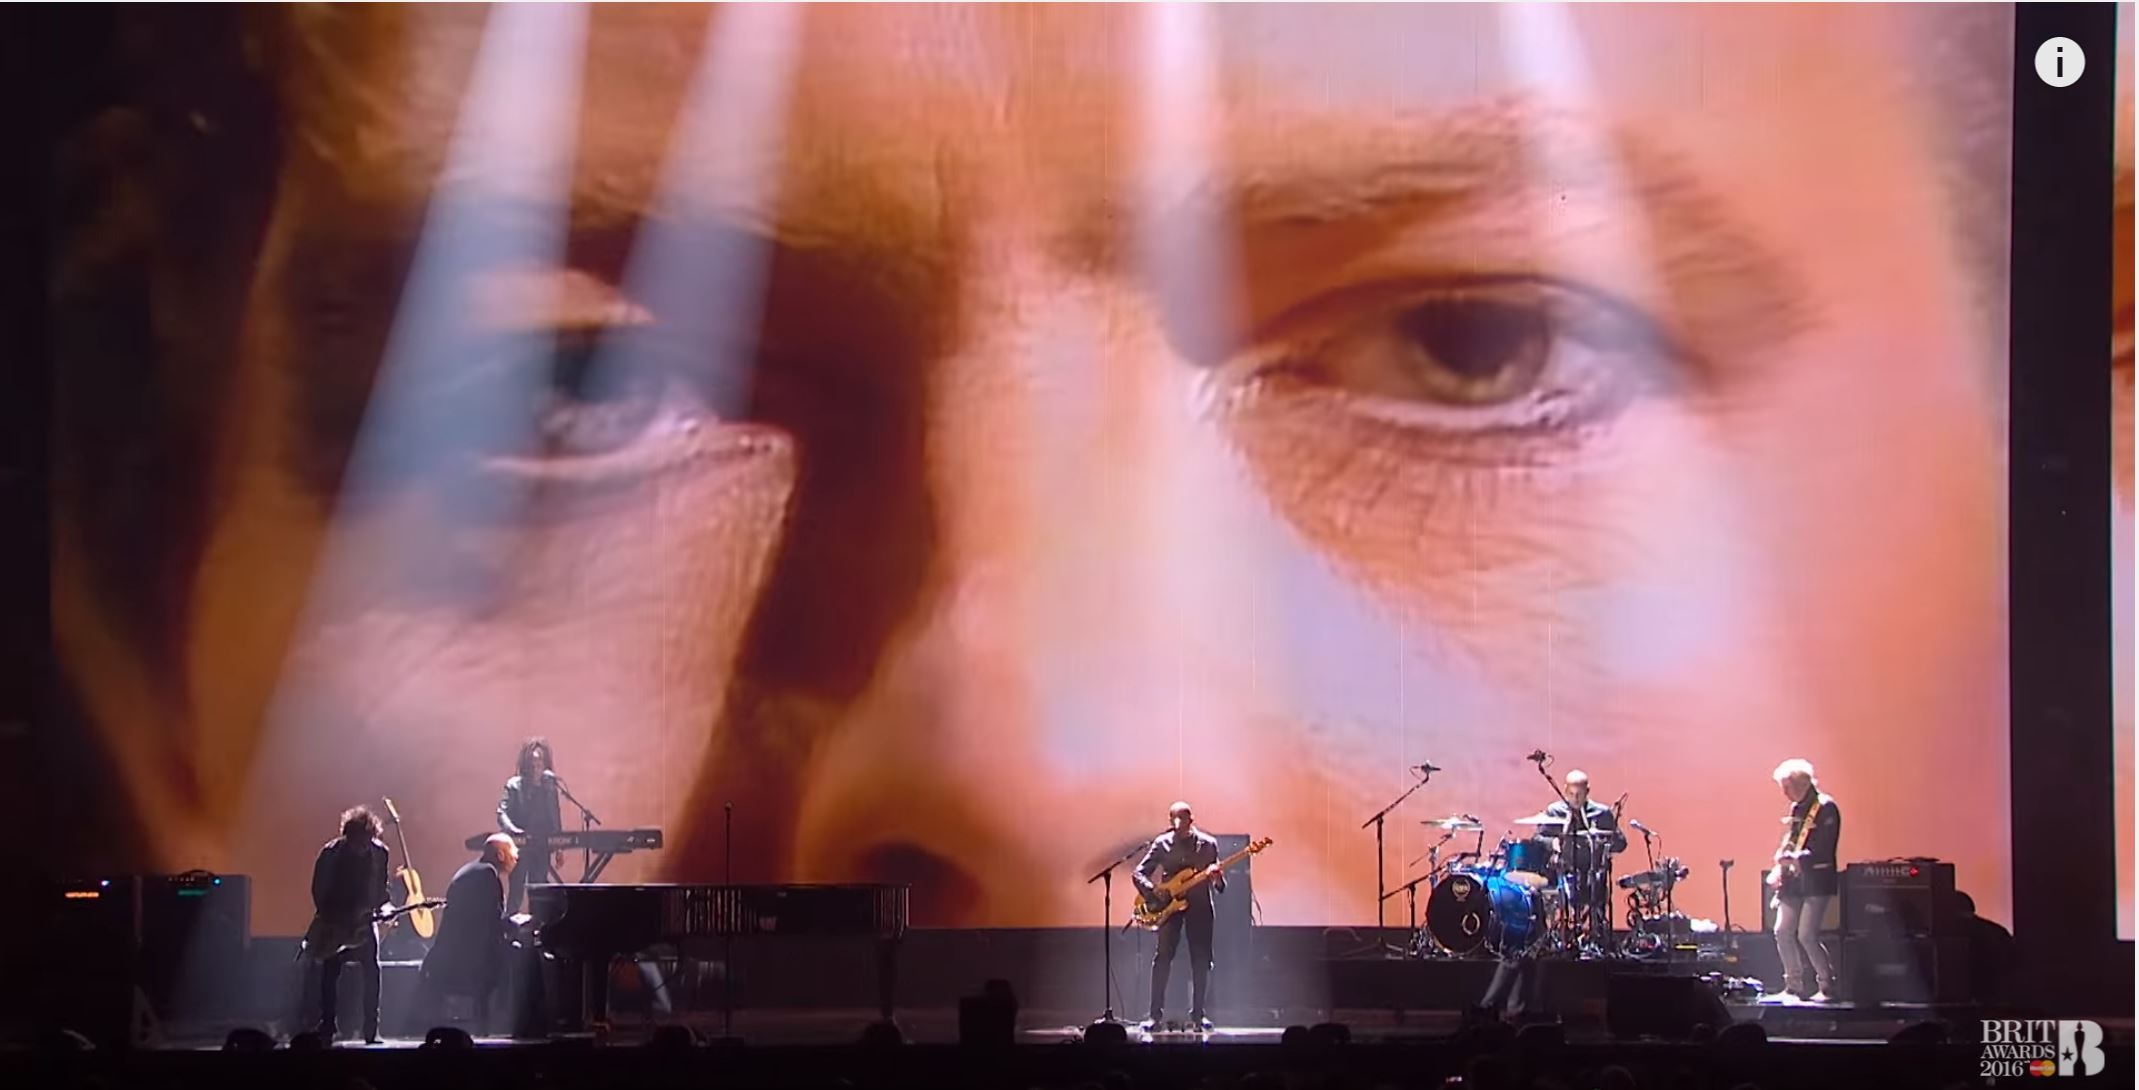 The Best David Bowie Tribute So Far At The Brit Awards 2016